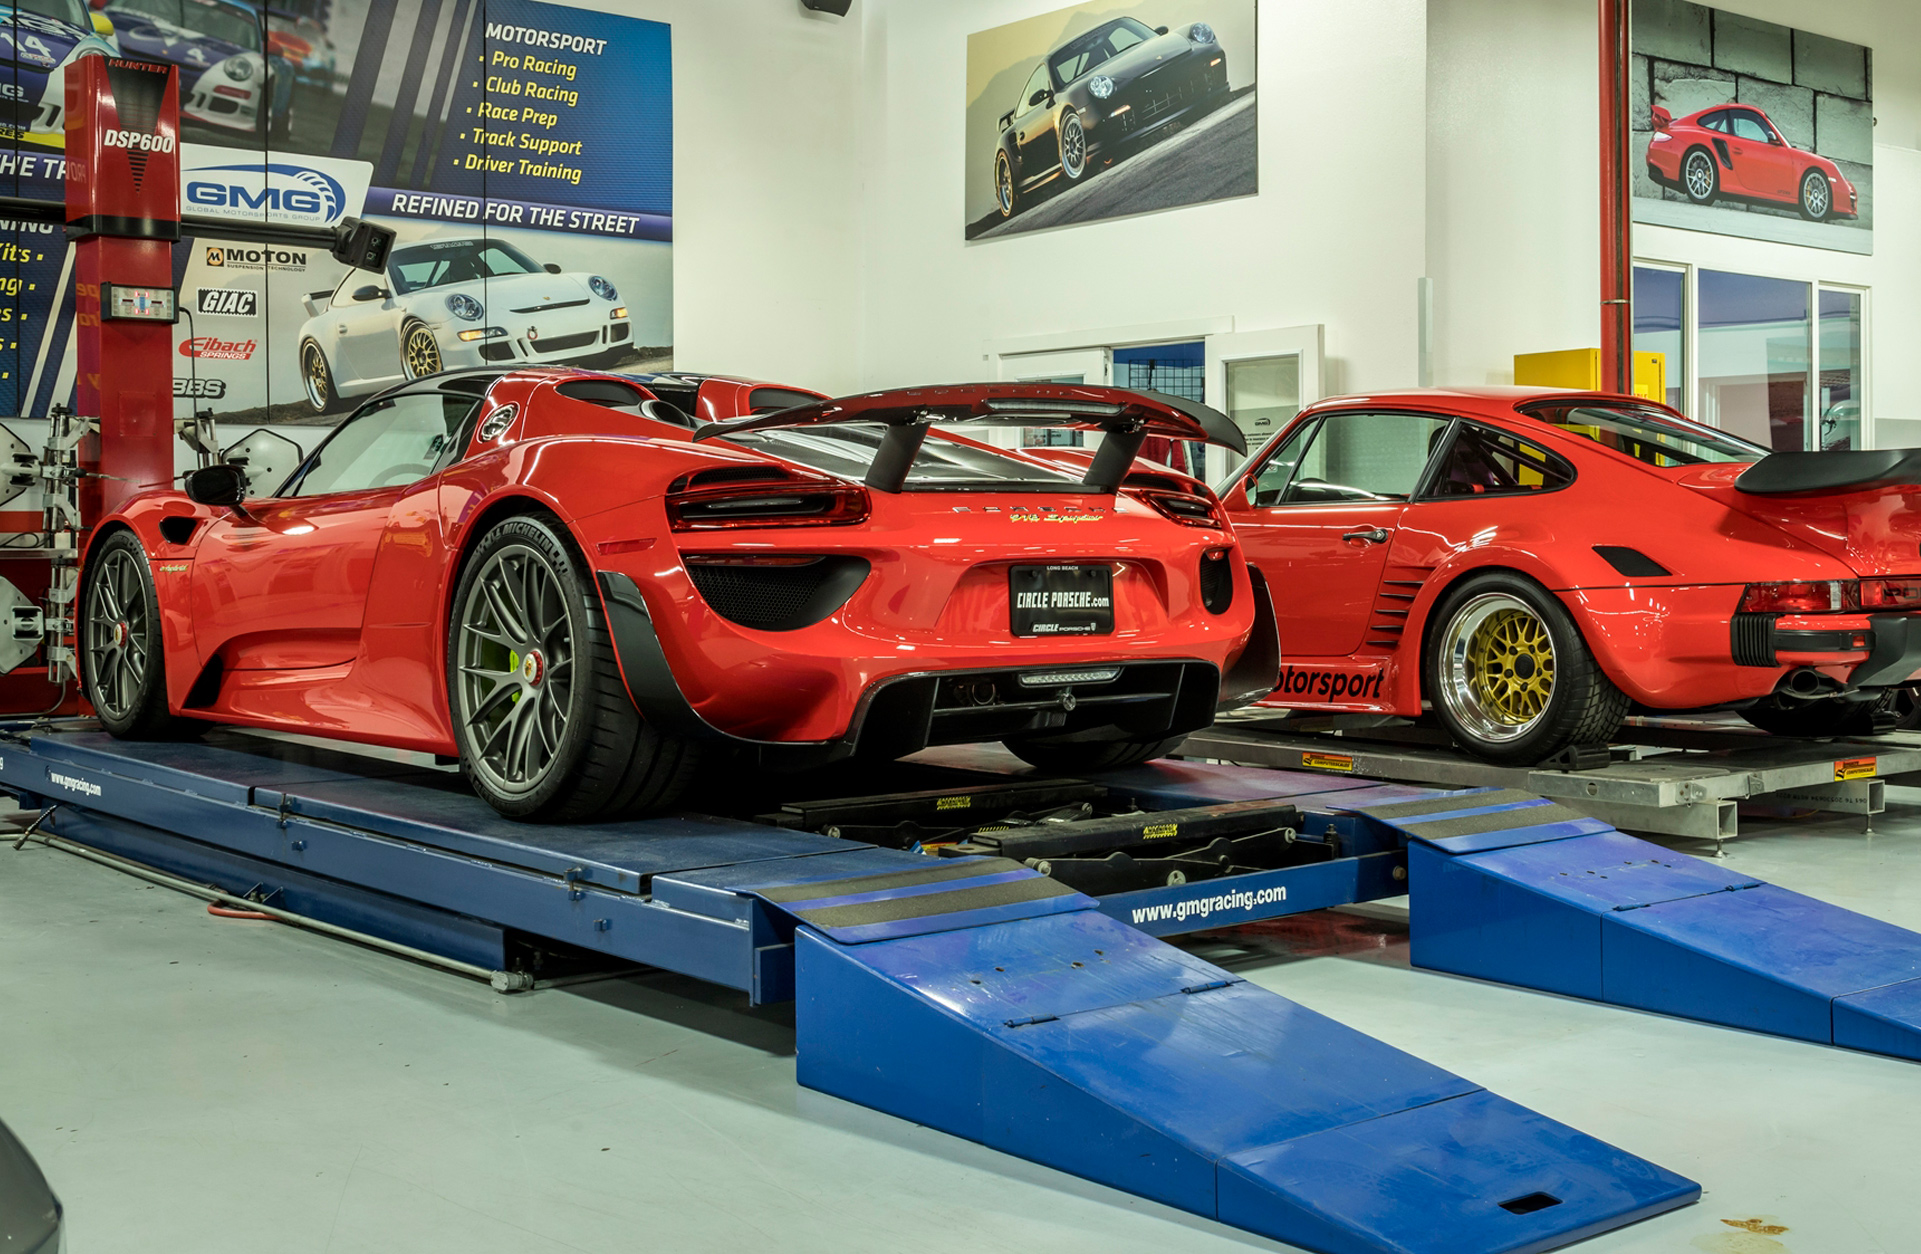 Porsche Factory Service at GMG Racing